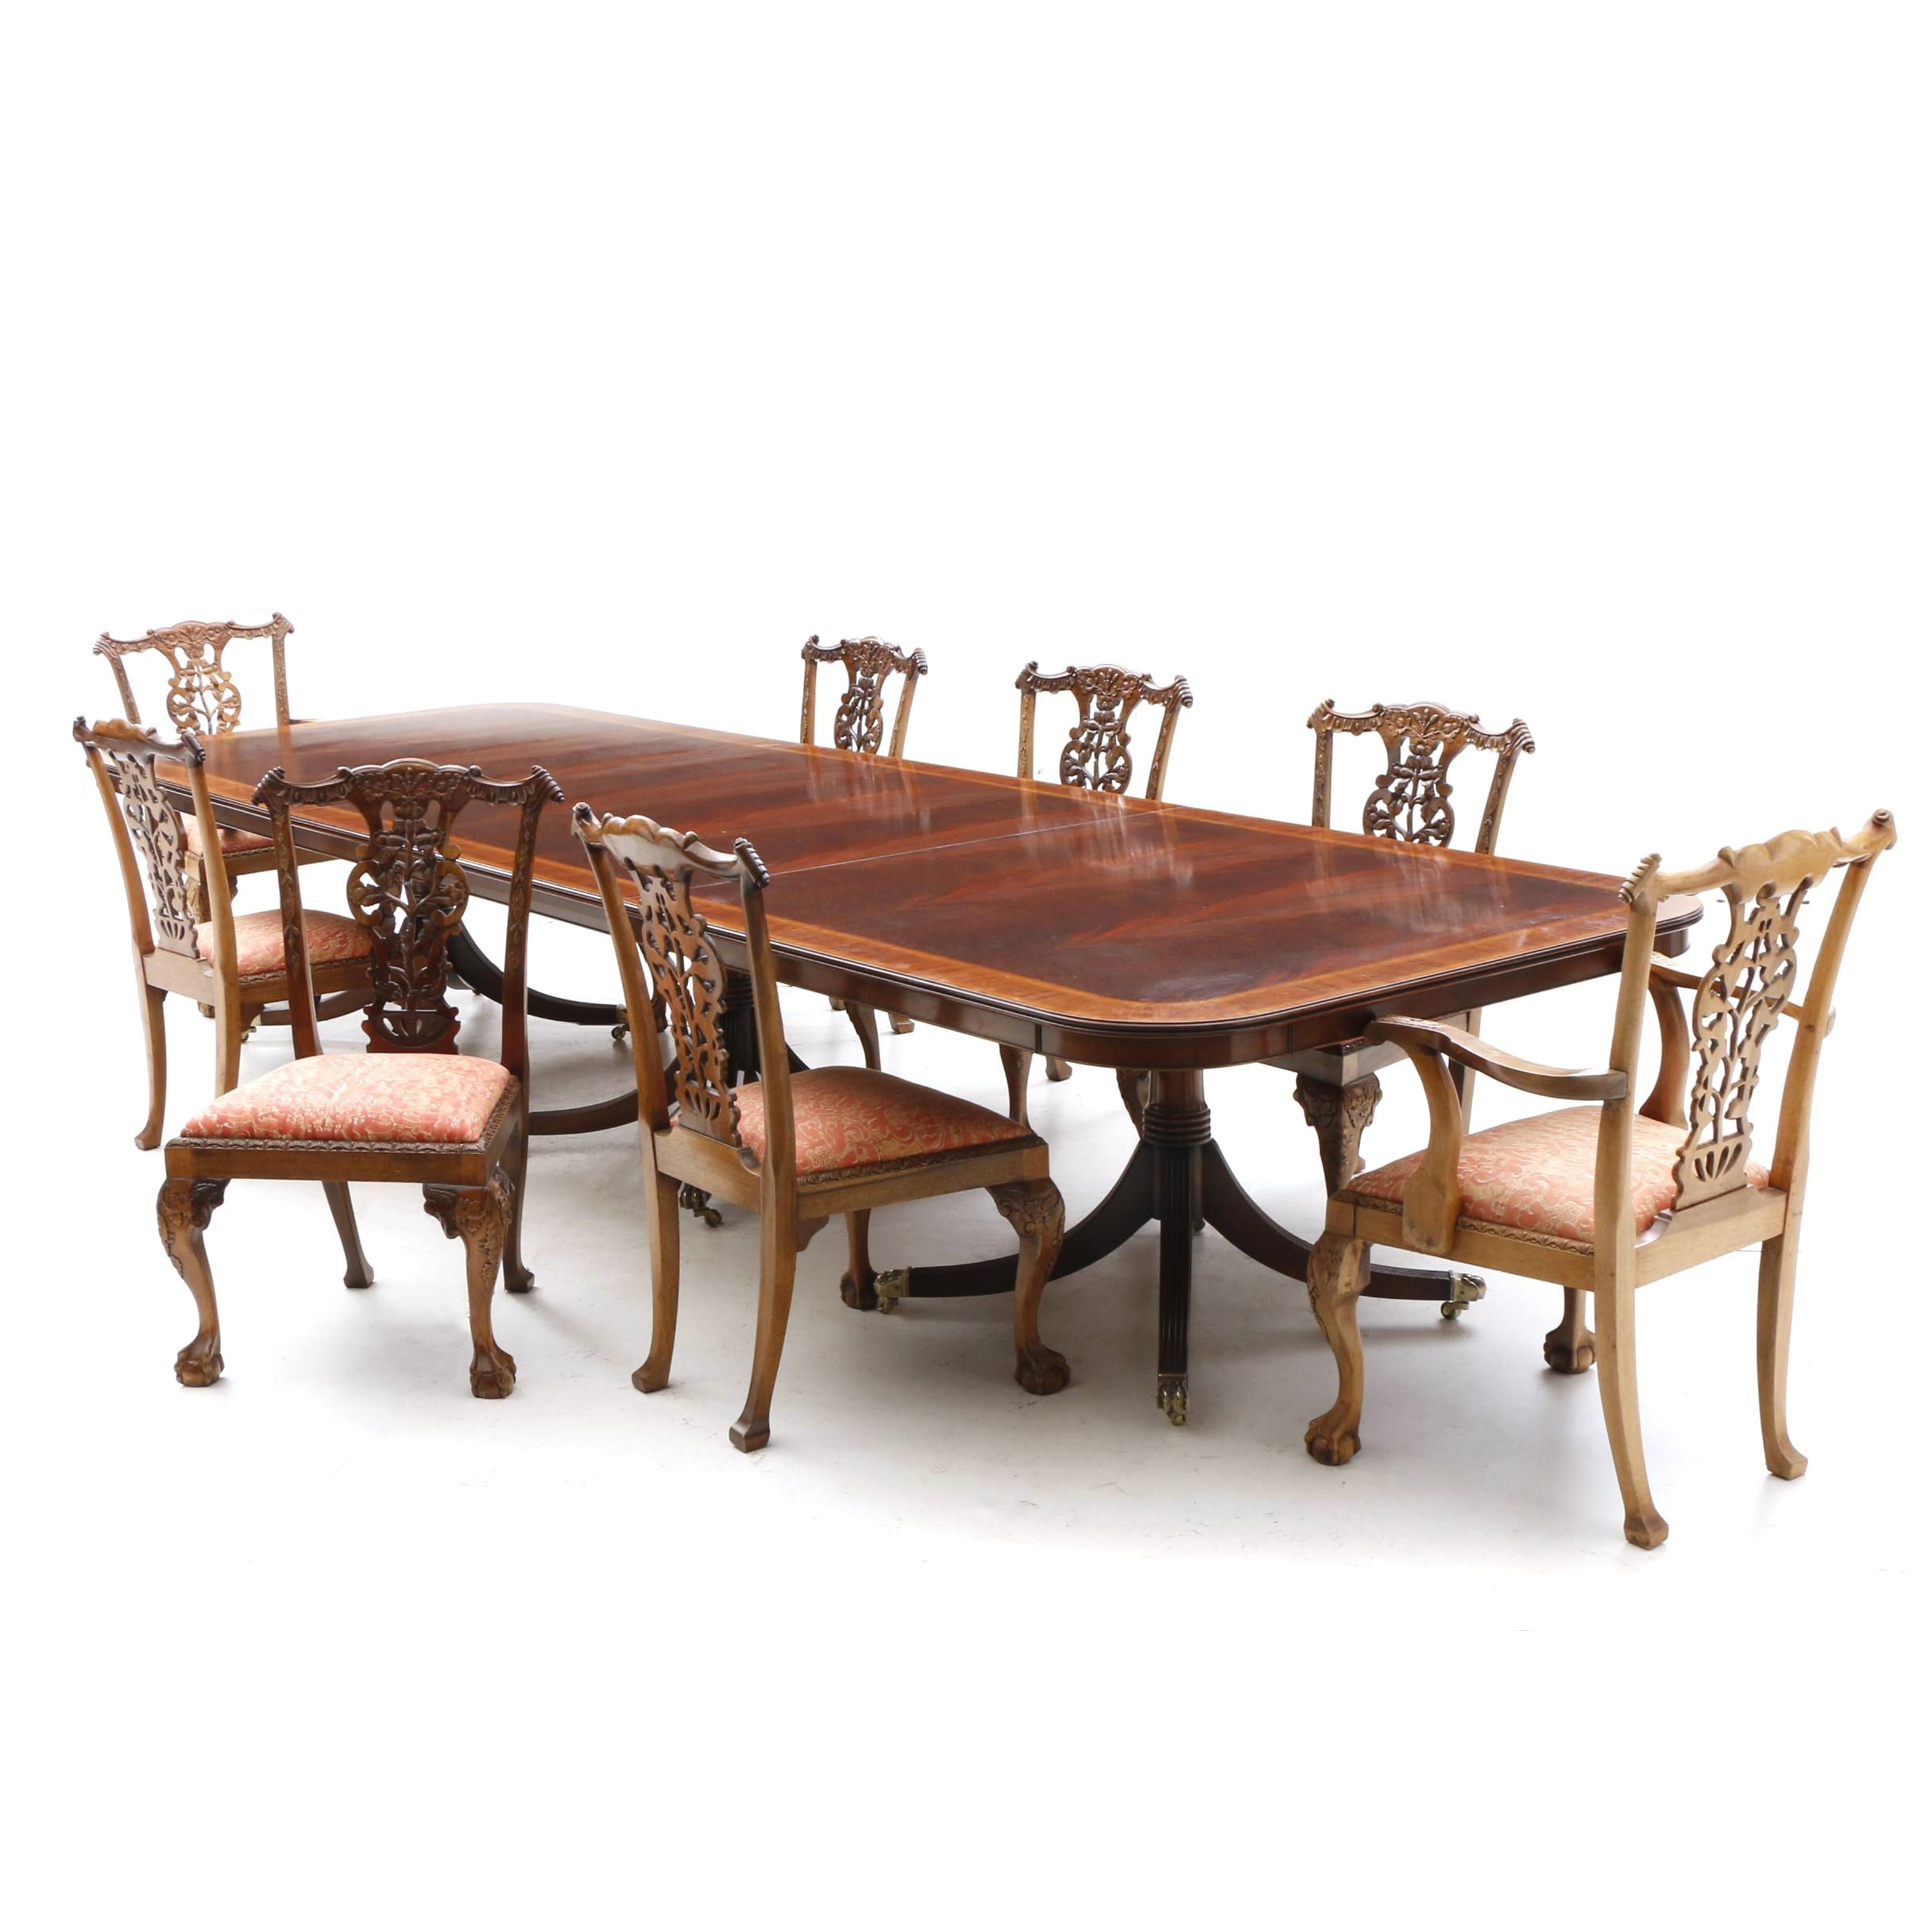 Chippendale Style Mahogany Dining Table and Eight Chairs, 20th Century